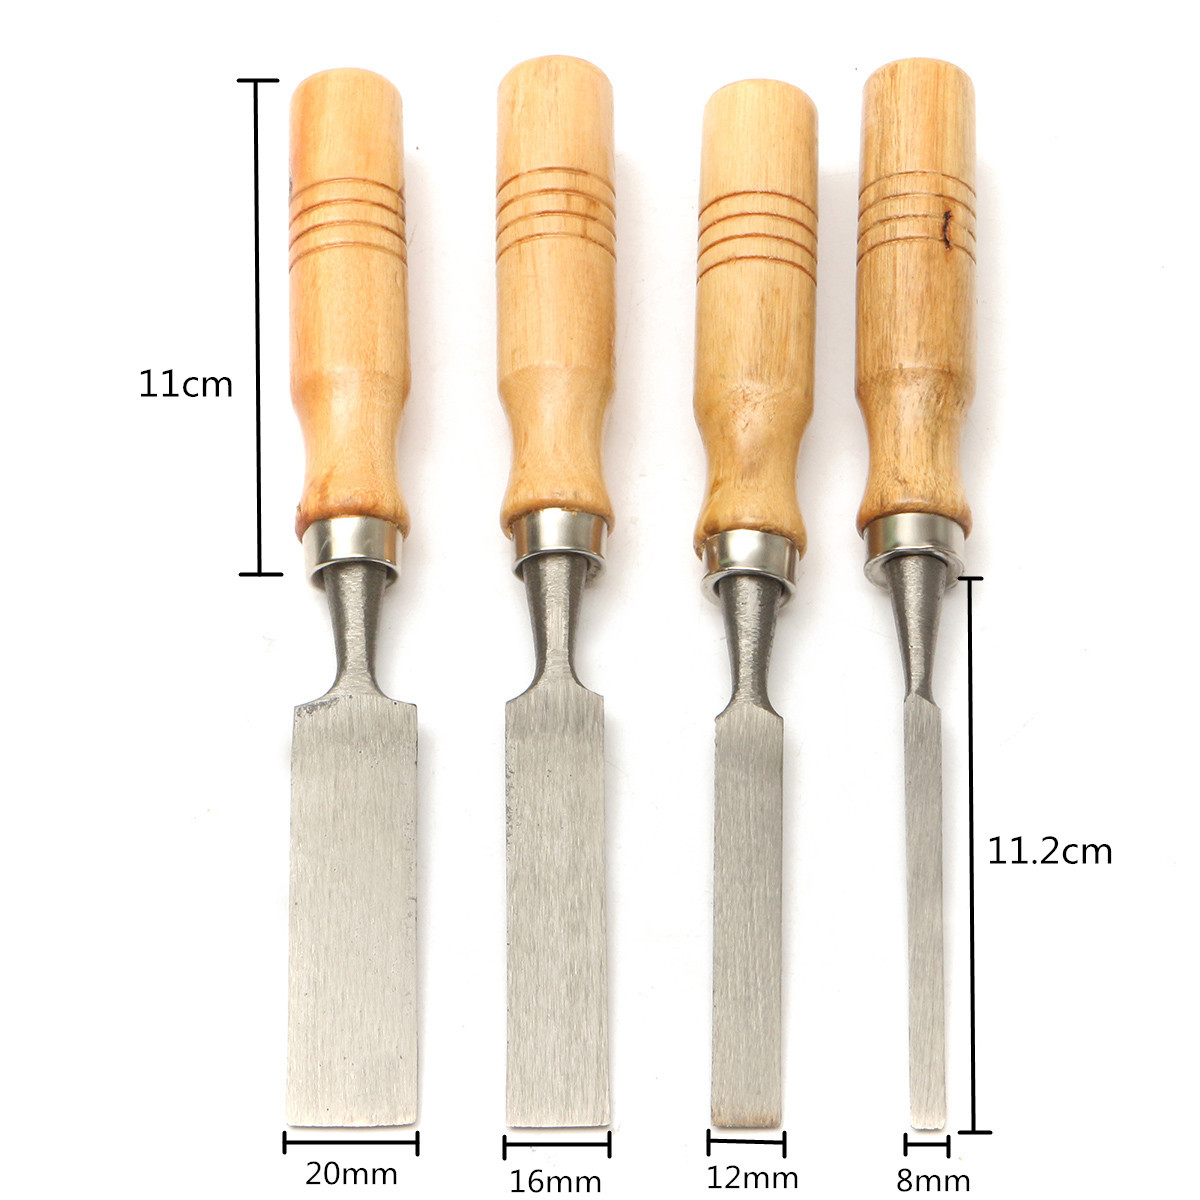 Doersupp 8/12/16/20mm 4Pcs For Woodworking Carpenter Hand Tools Work Wood Carving Chisels Tool Set